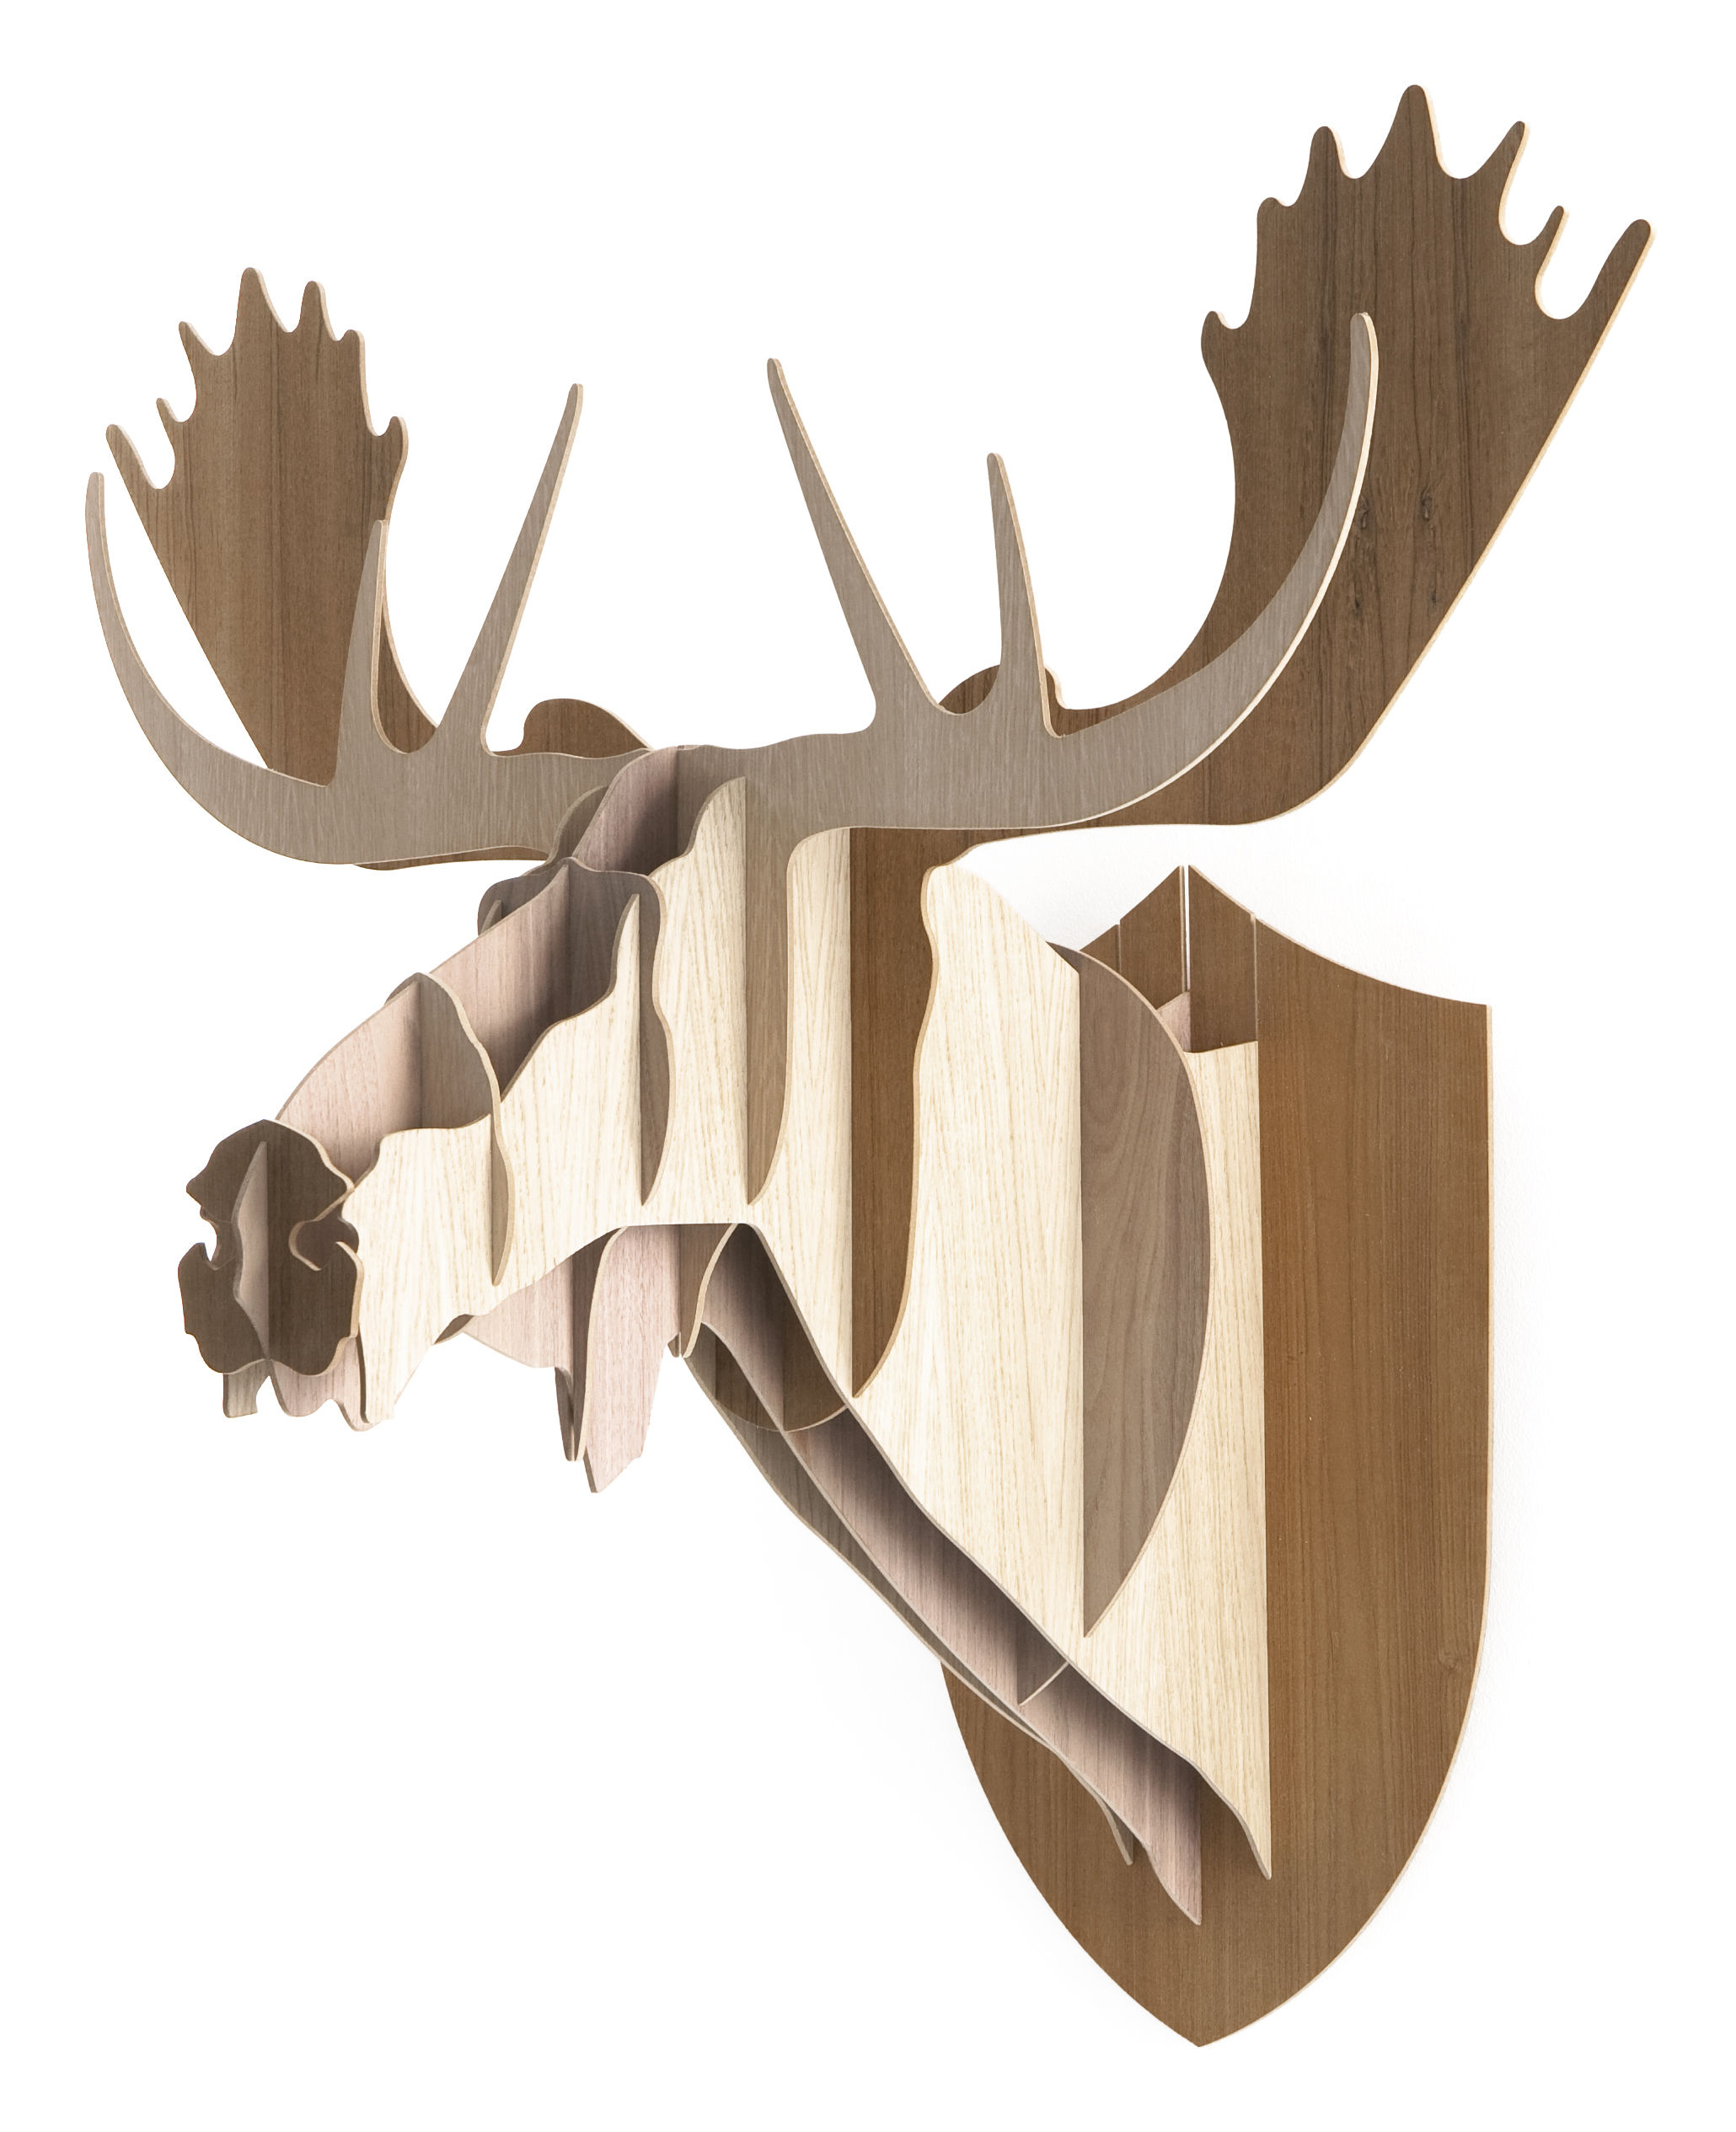 Decoration - Funny & surprising - Trophy - Moose - H 86 cm / 3 colours by Moustache - H 86 cm - Oak/teak/walnut - Oak, Teak, Walnut